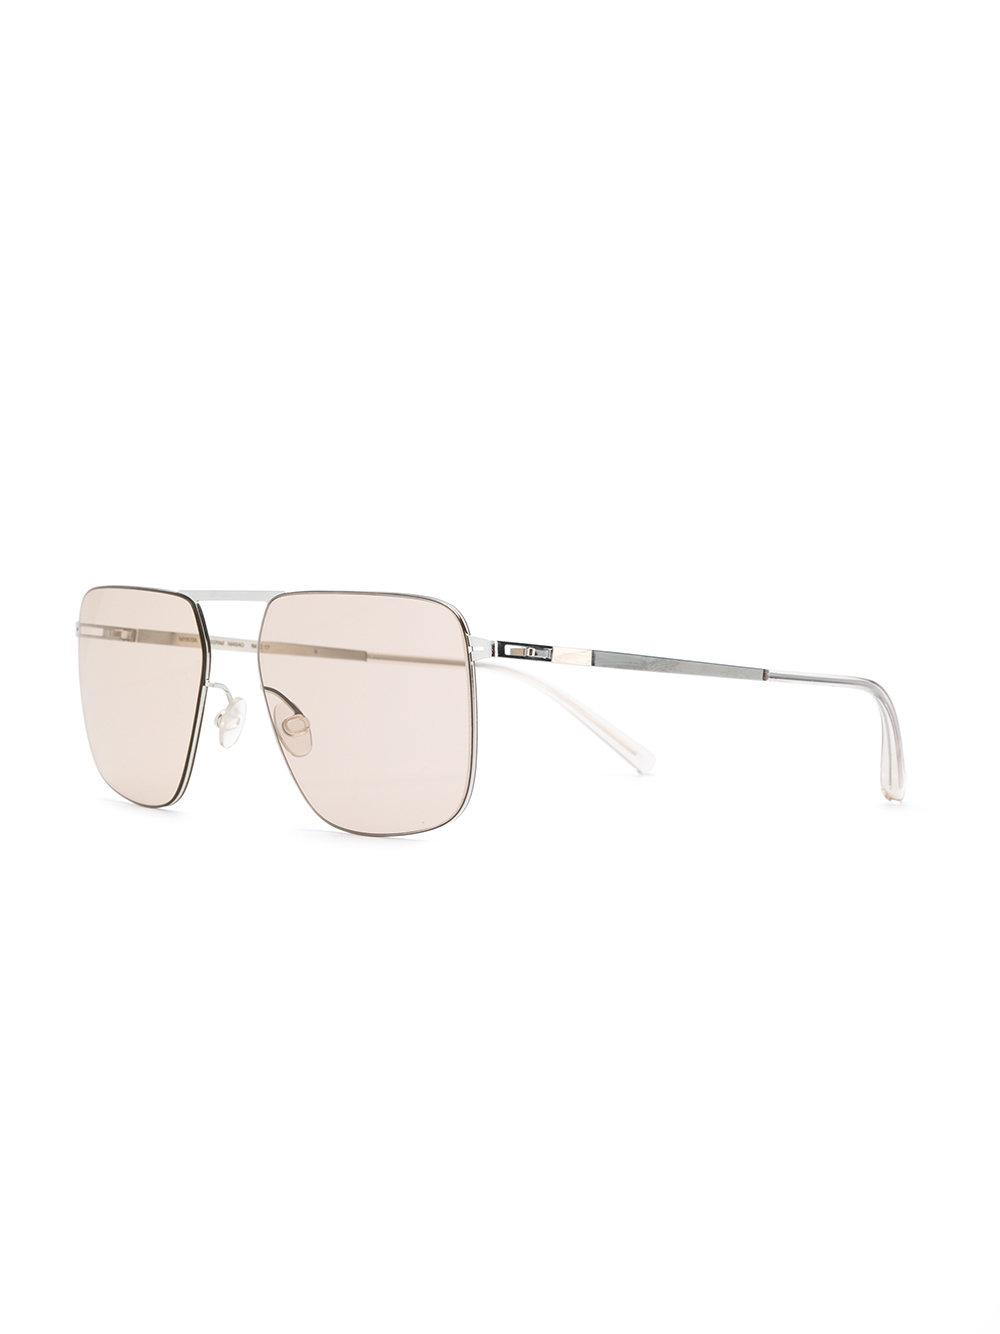 Mykita Sunglasses Lyst Metallic Square Tinted rq6frw